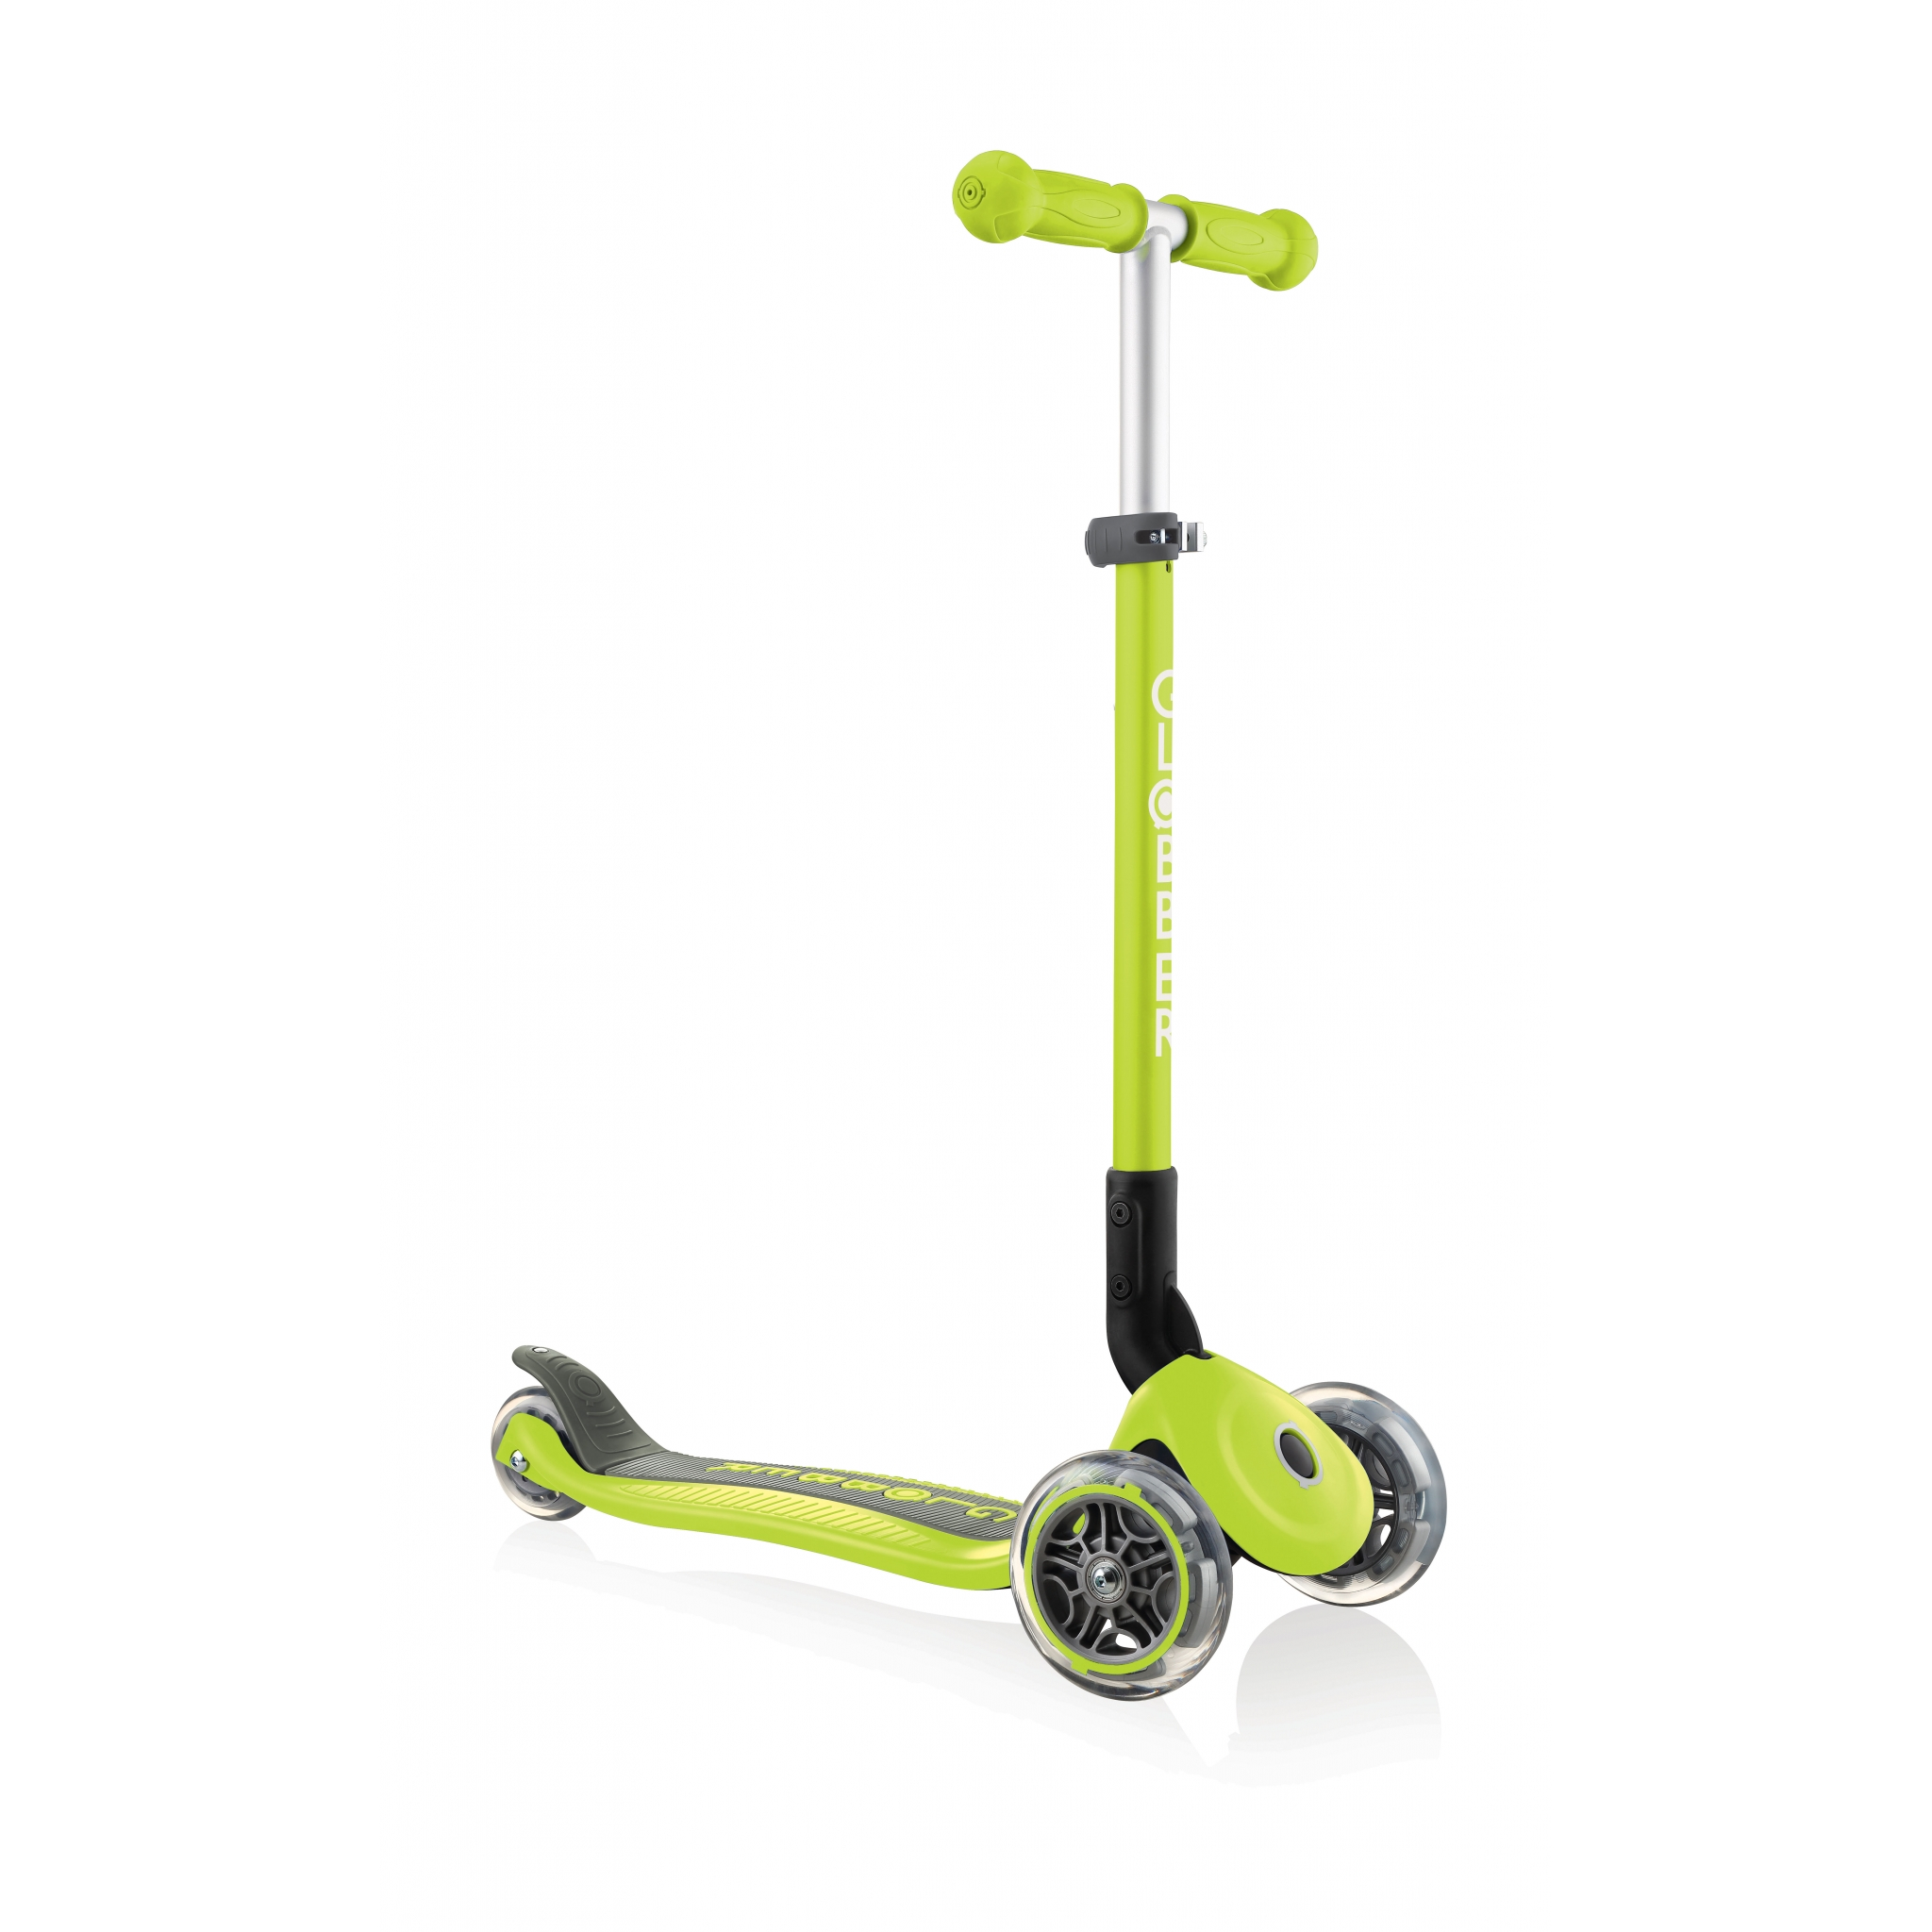 PRIMO-FOLDABLE-3-wheel-foldable-scooter-for-kids-lime-green